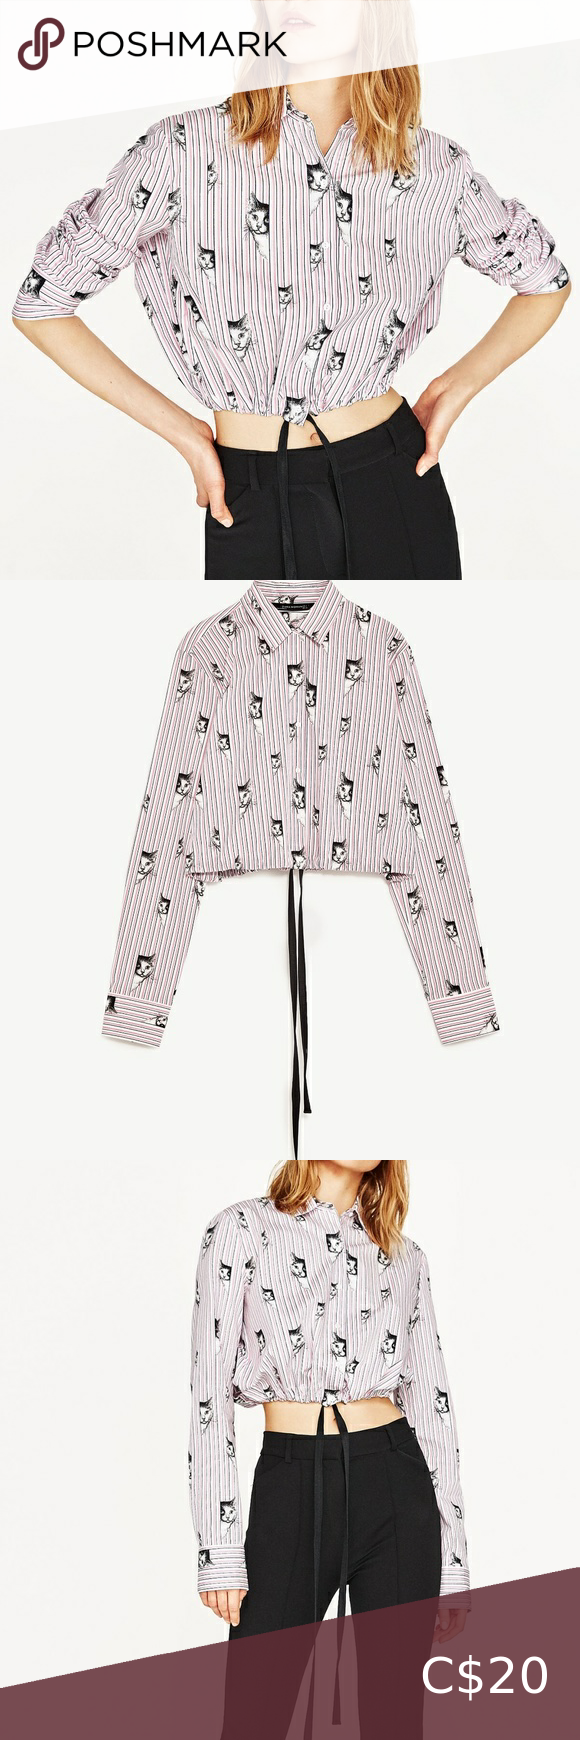 Zara Kitty Cat Print Striped Cropped Shirt Top S in 2020